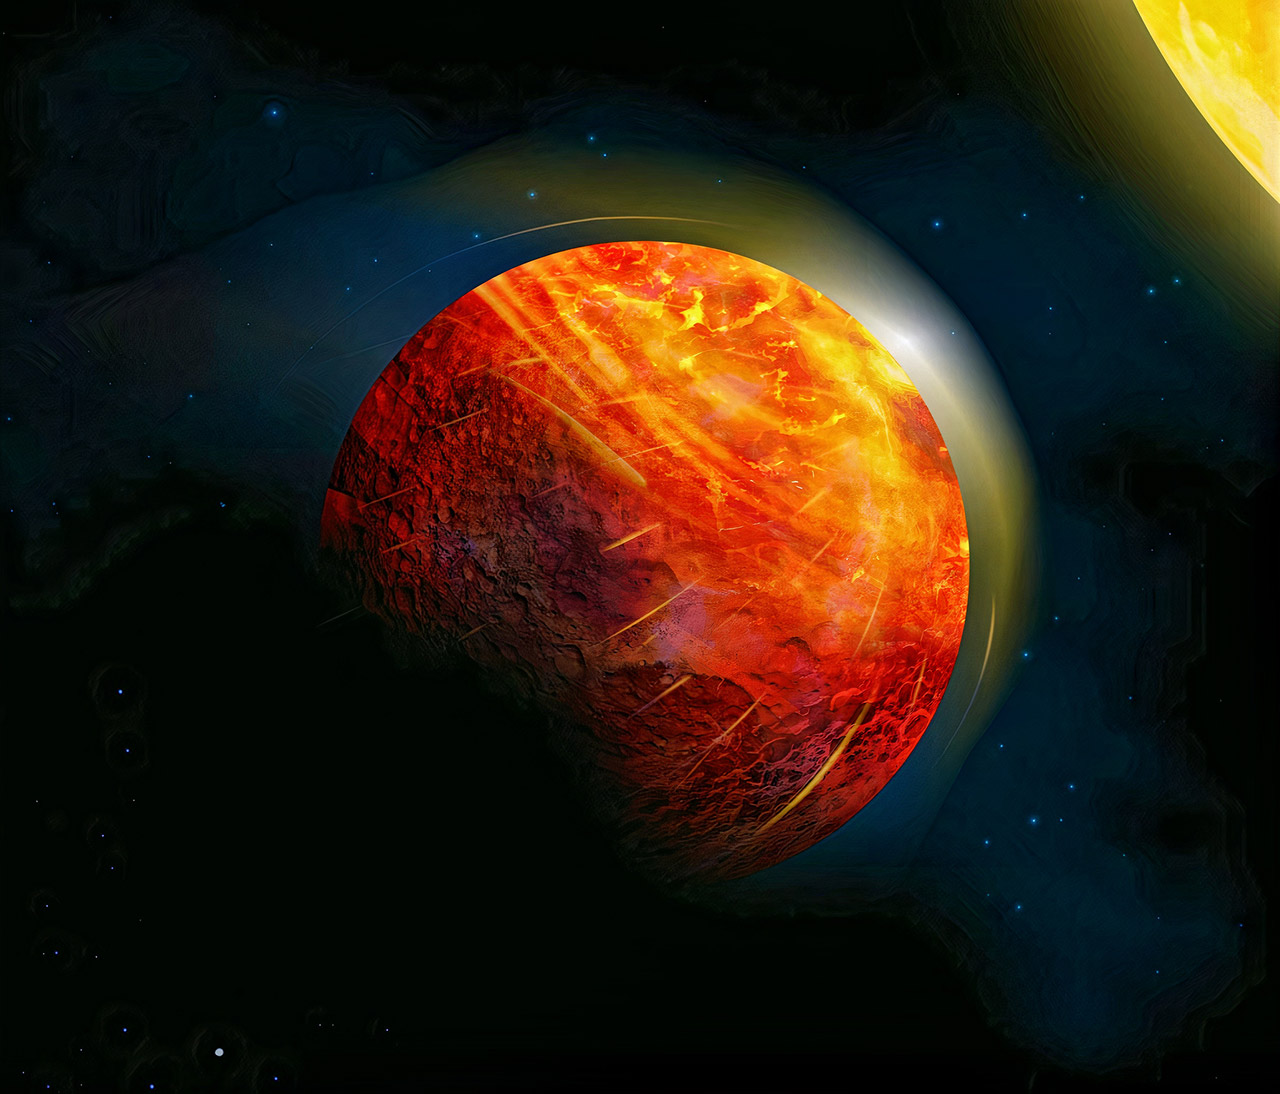 Earth Exoplanet Lava Planet K2-141b